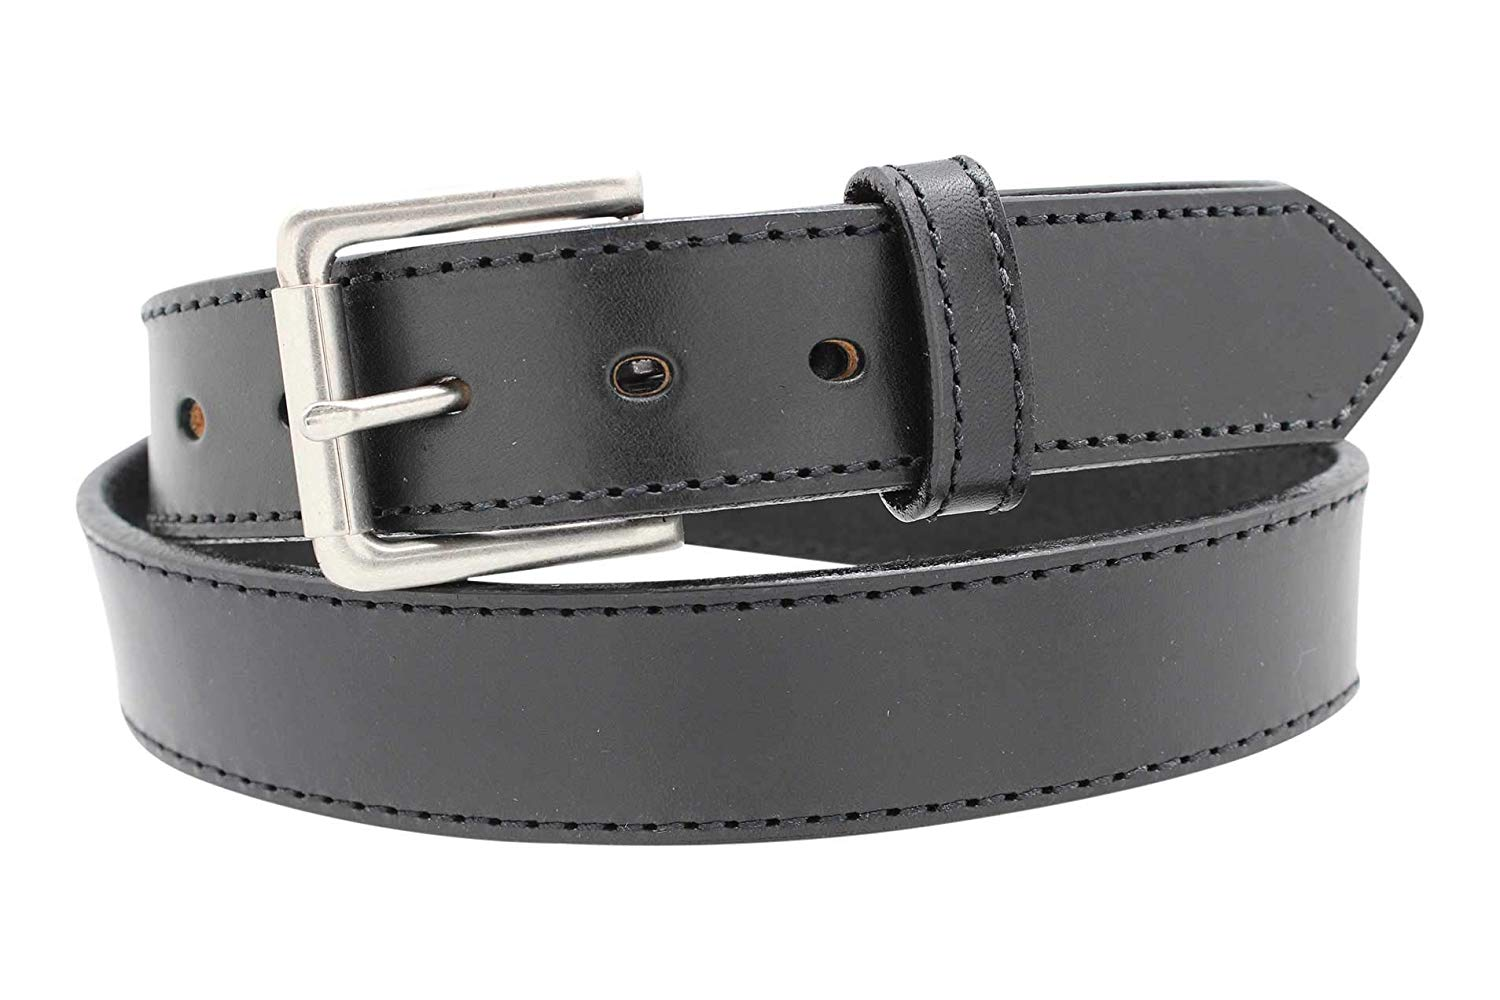 Heavy Duty Concealed Carry CCW Leather Stitched Gun Belt, 14 oz